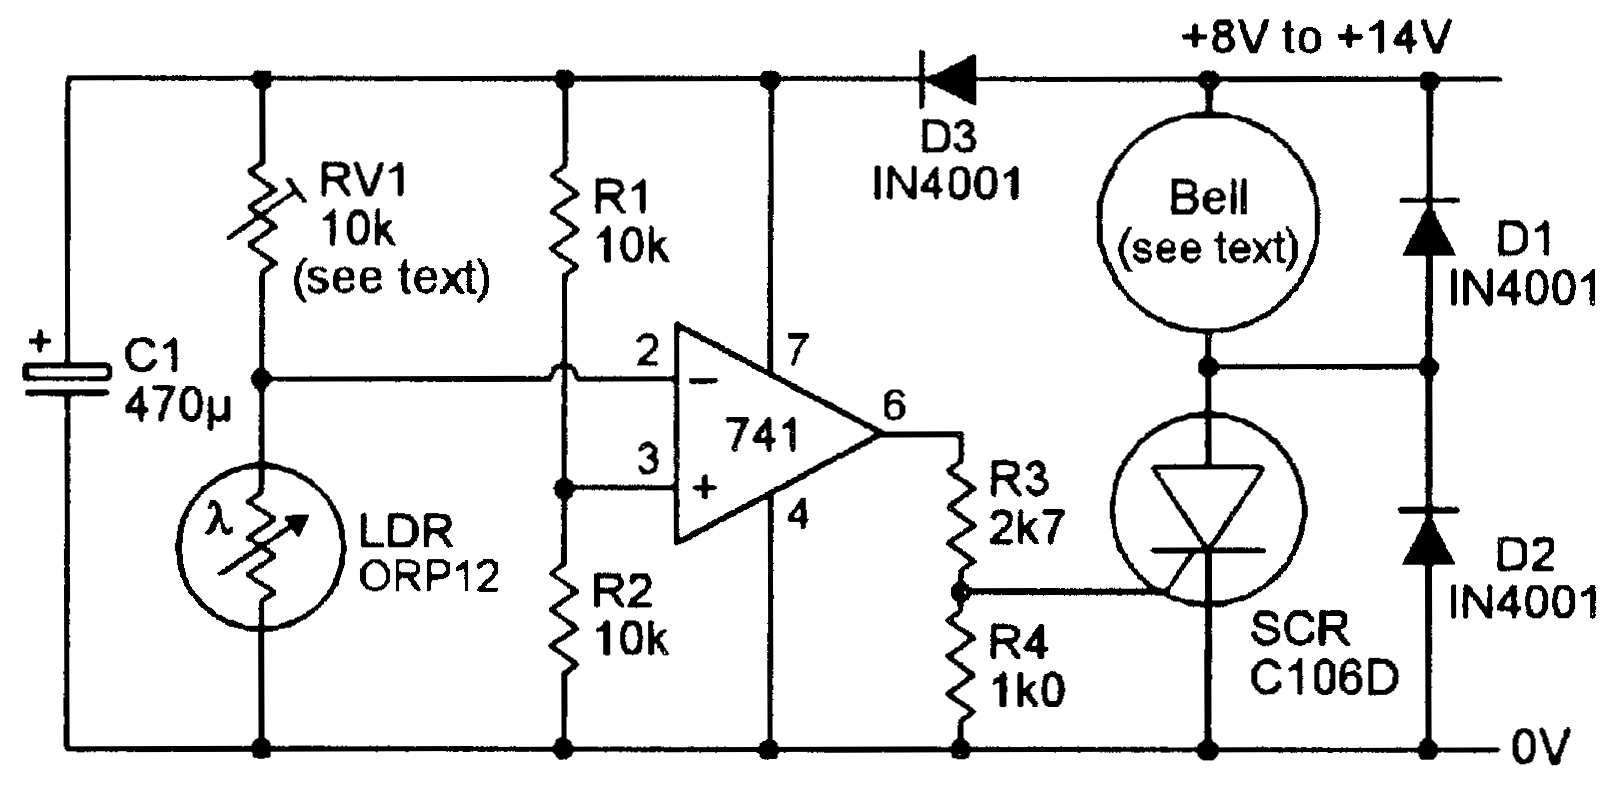 Light Sensitive Circuits Nuts Volts Magazine Circuit Here Are Two More That Obviously Have Not Been Tried A Bell Output Ldr Alarm